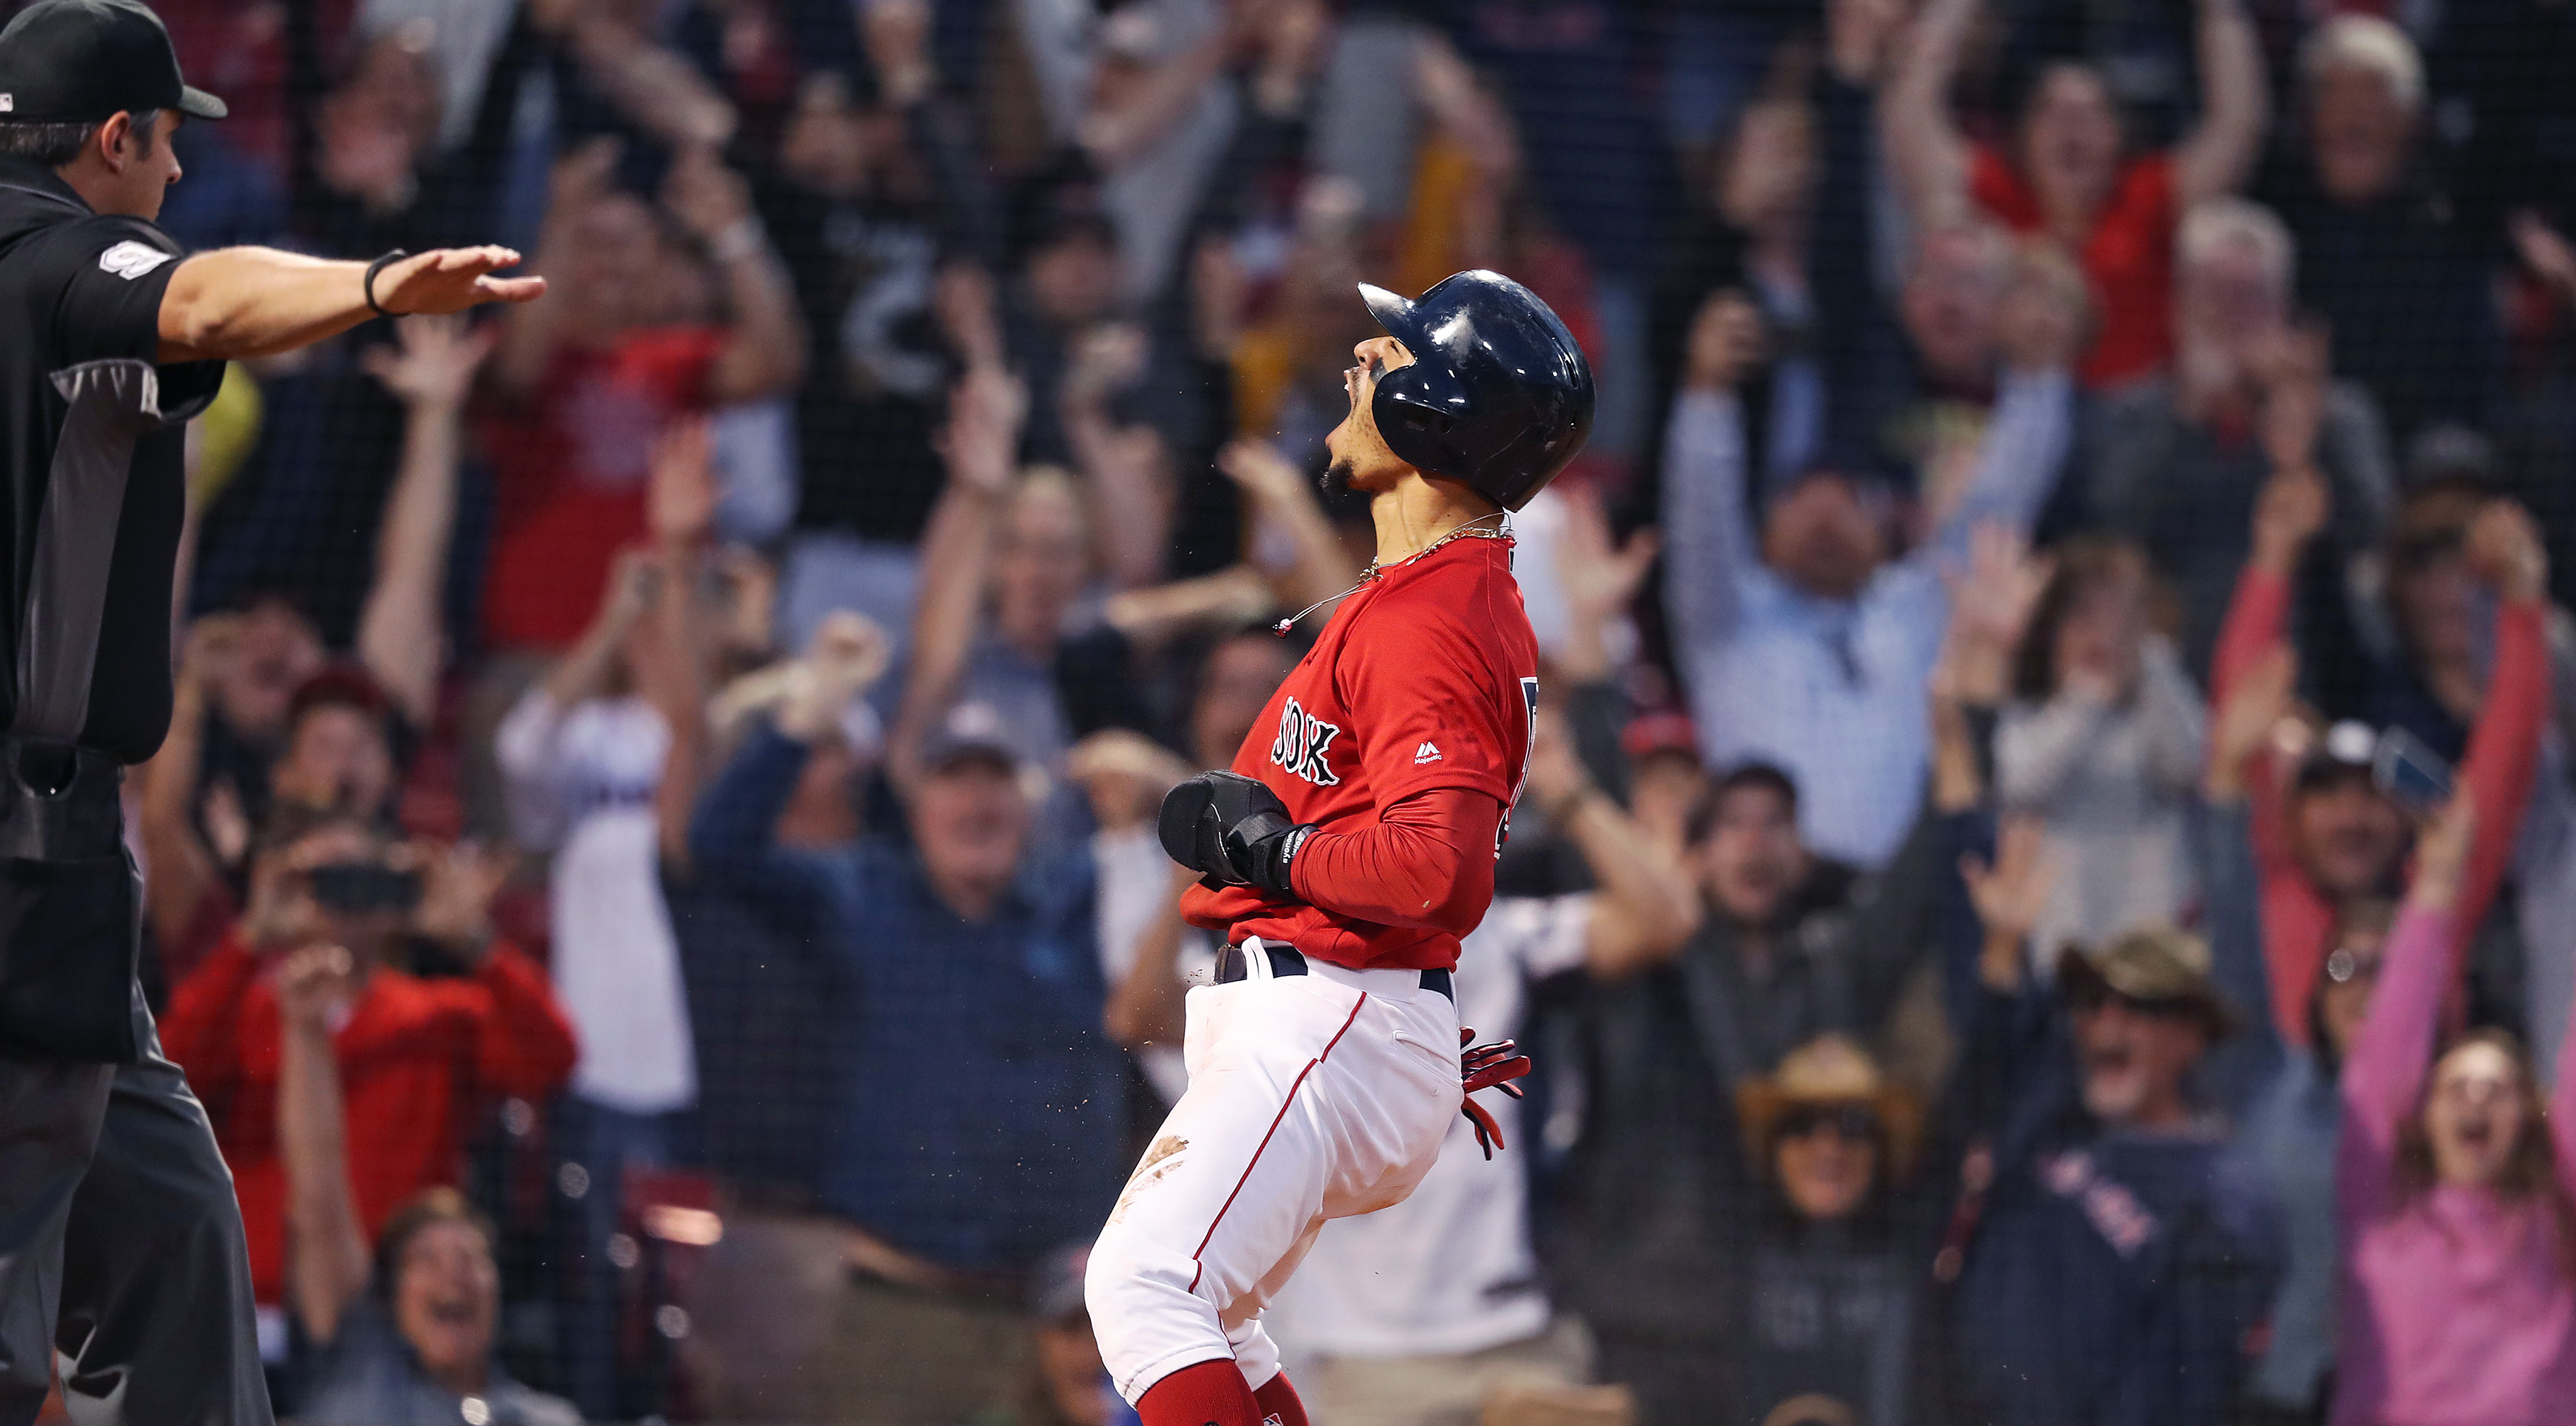 If Red Sox trade Mookie Betts, it's tantamount to malpractice